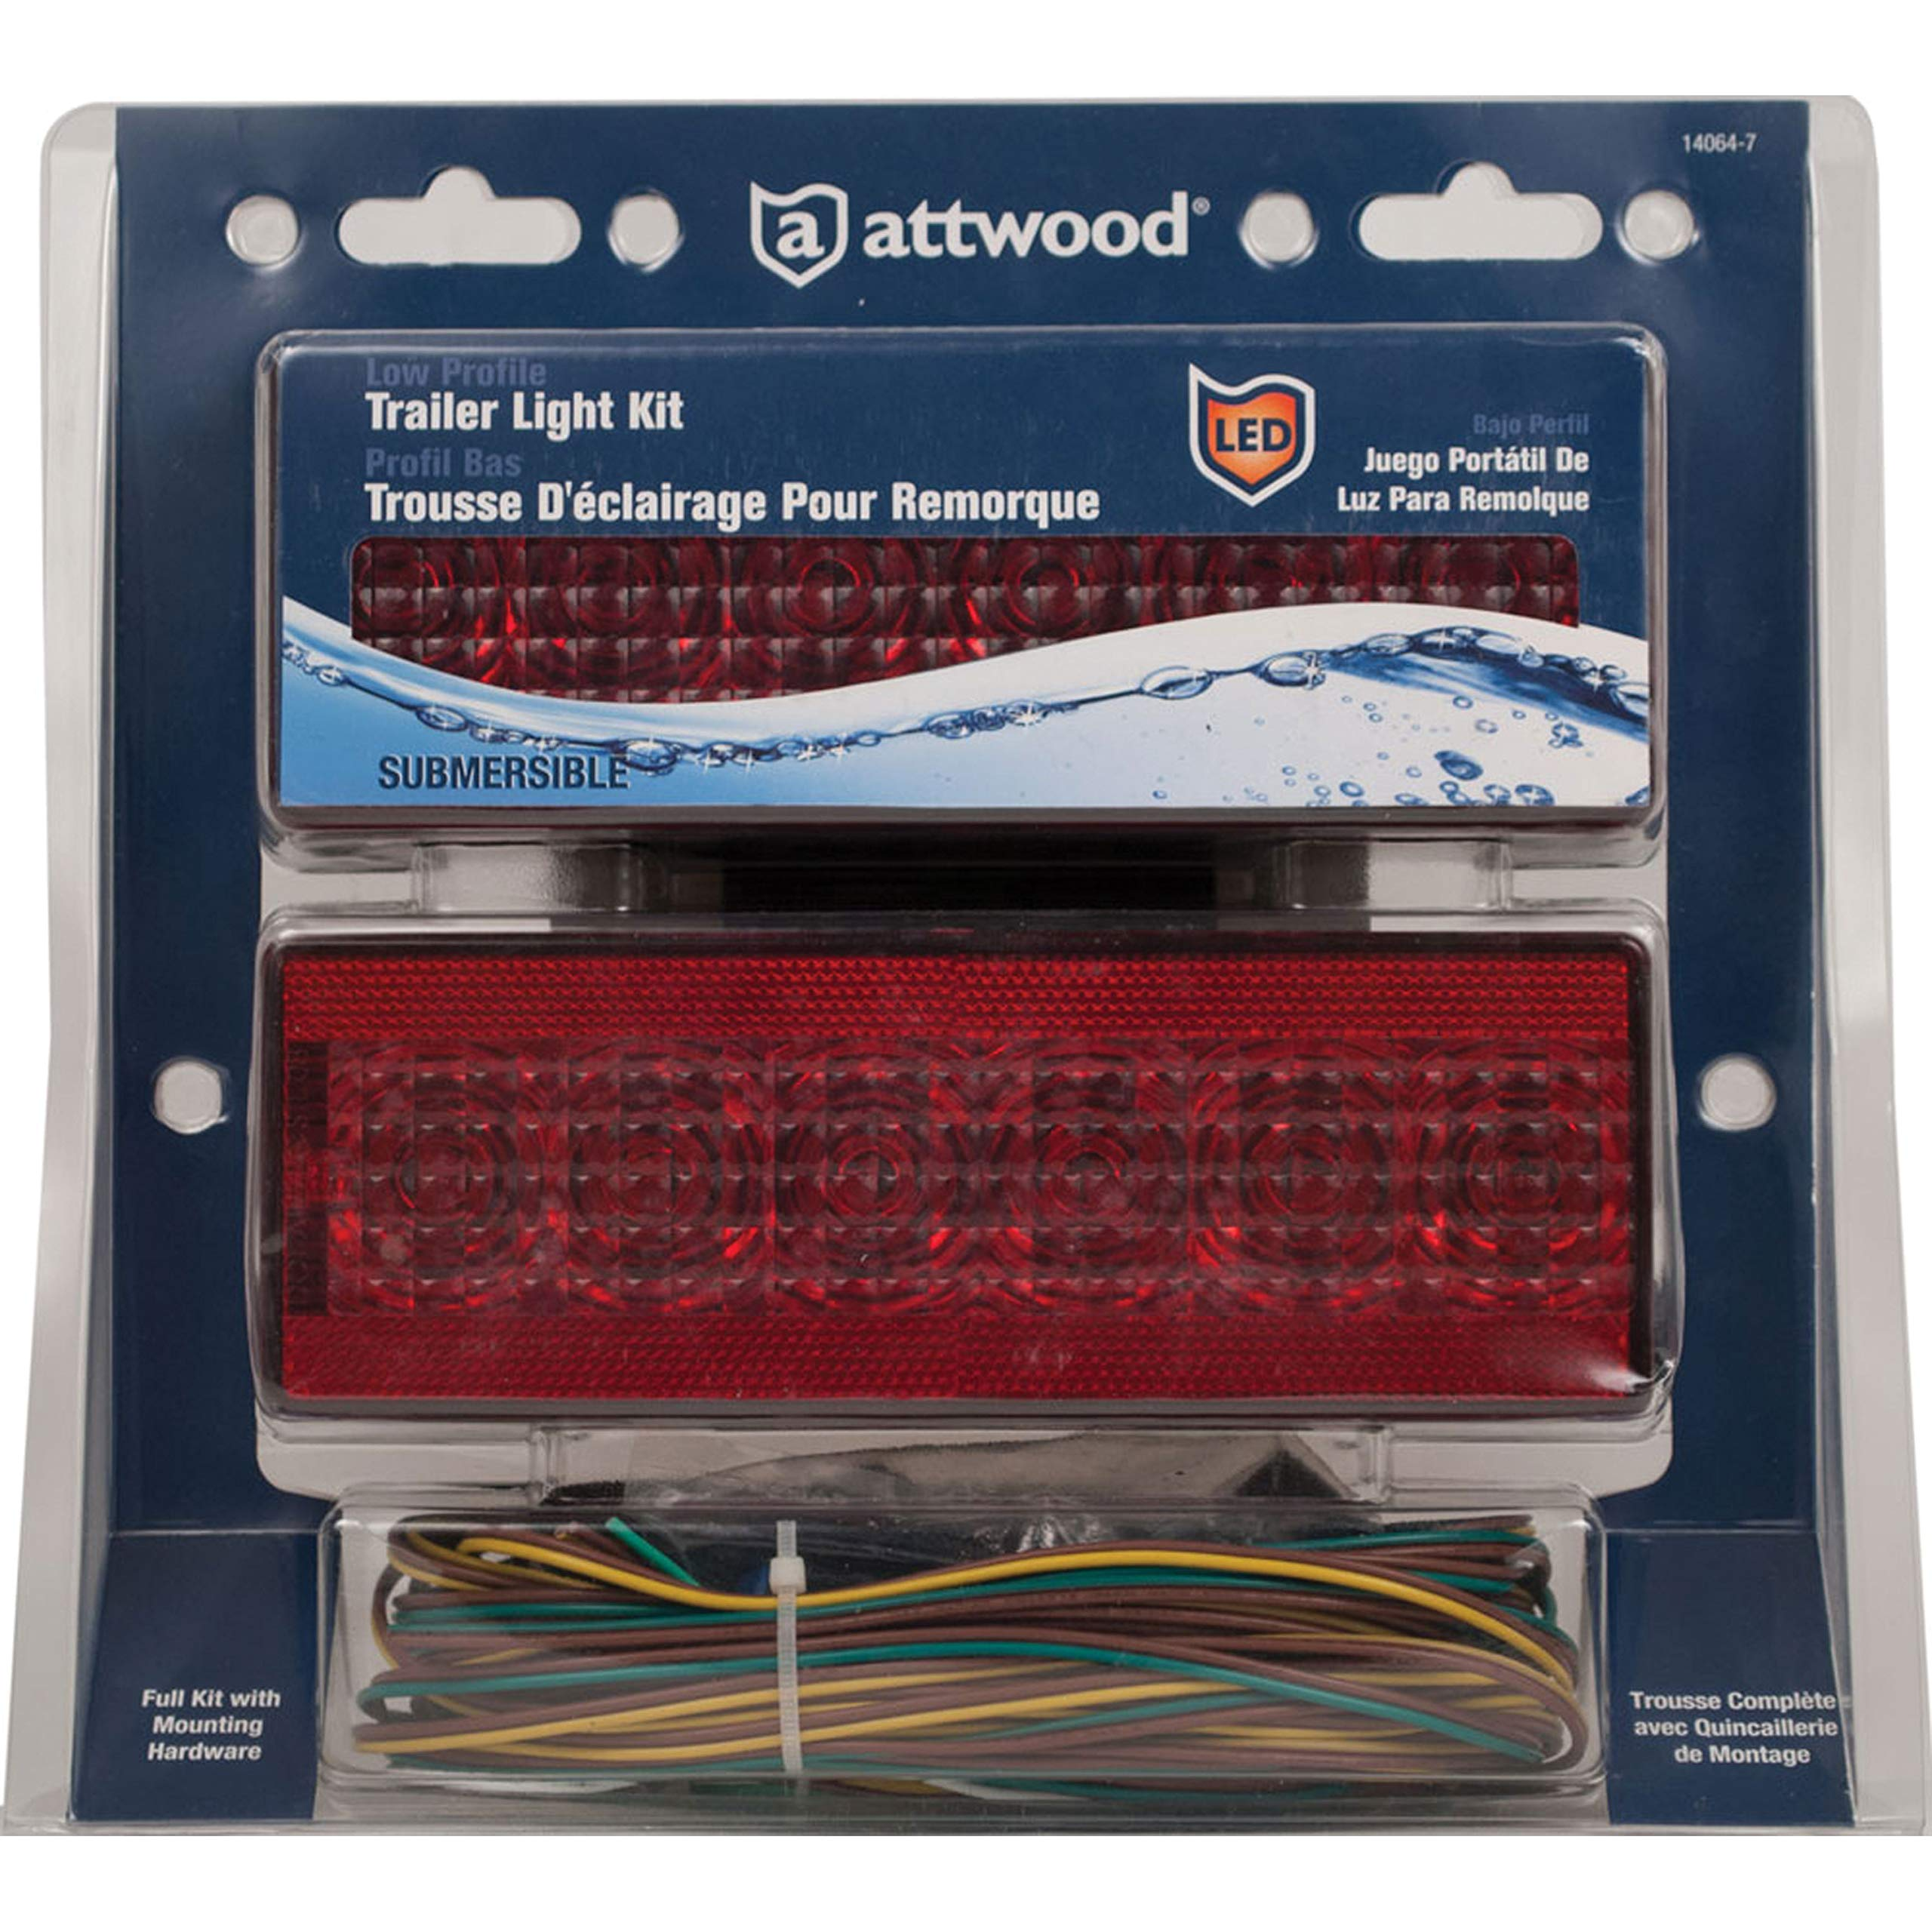 attwood 14064-7 LED Low-Profile Trailer Light Kit by attwood